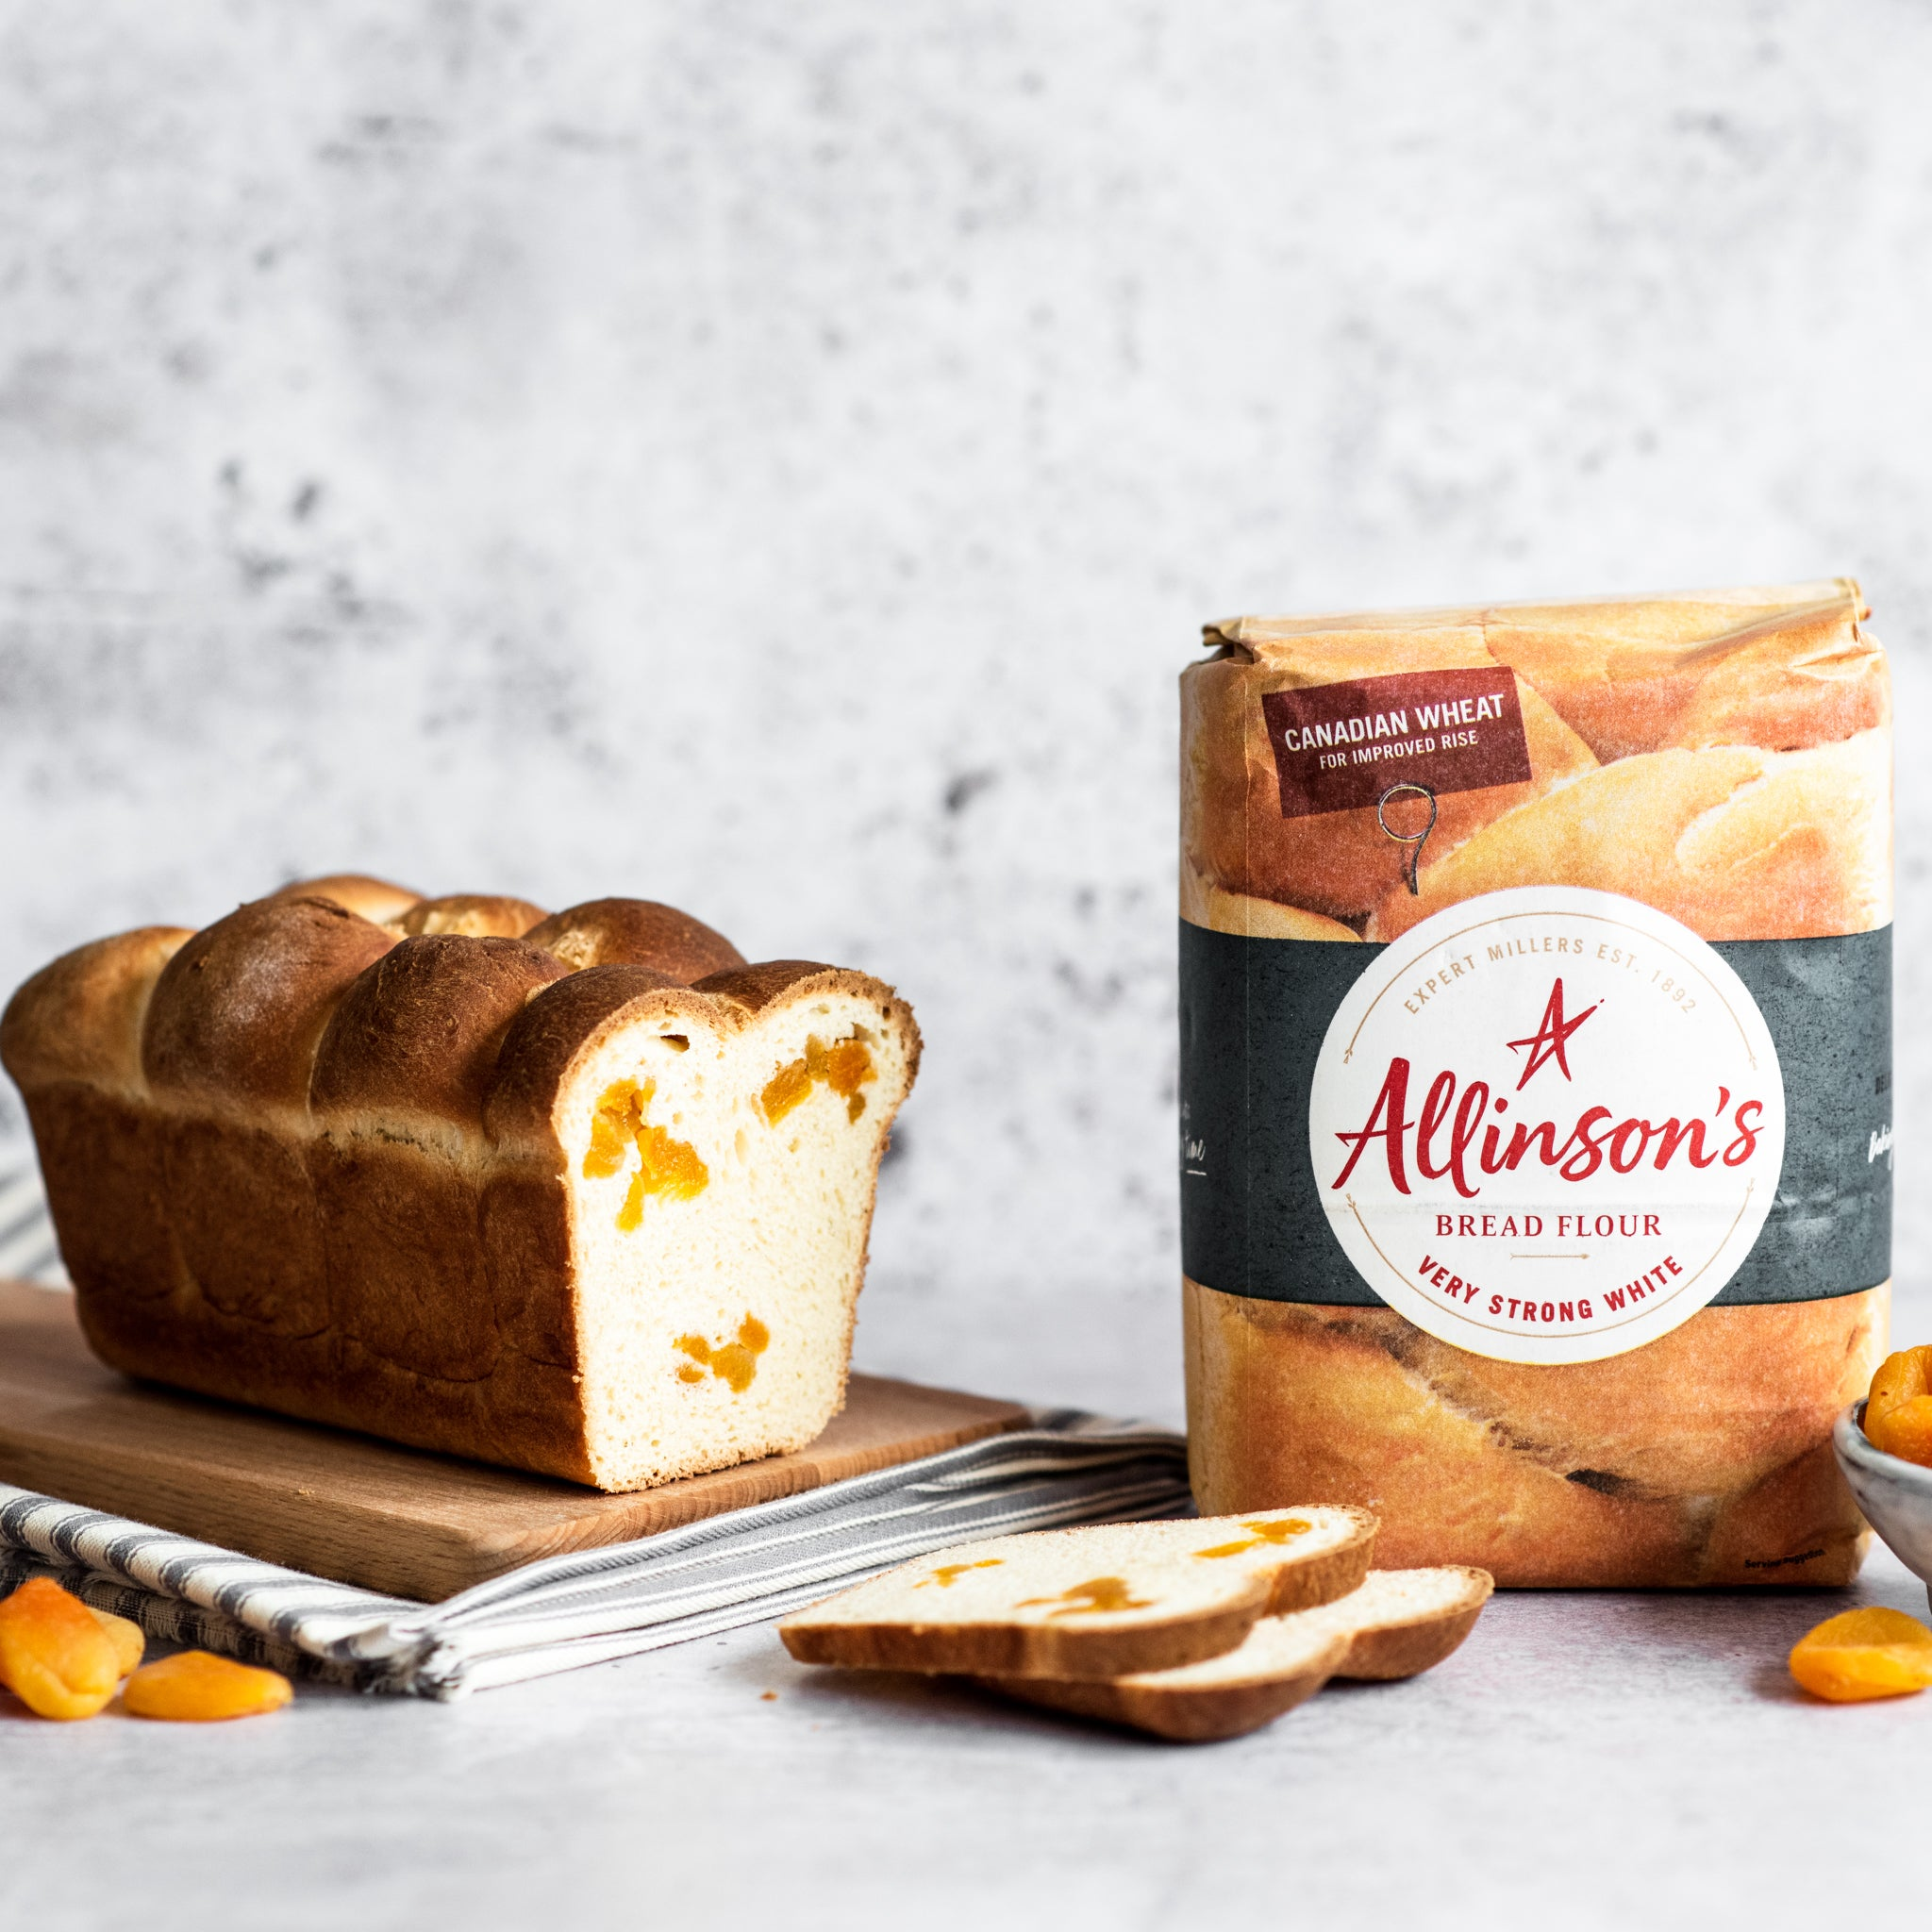 Brioche loaf on bread board with two slices cut in front and Allinson's flour pack